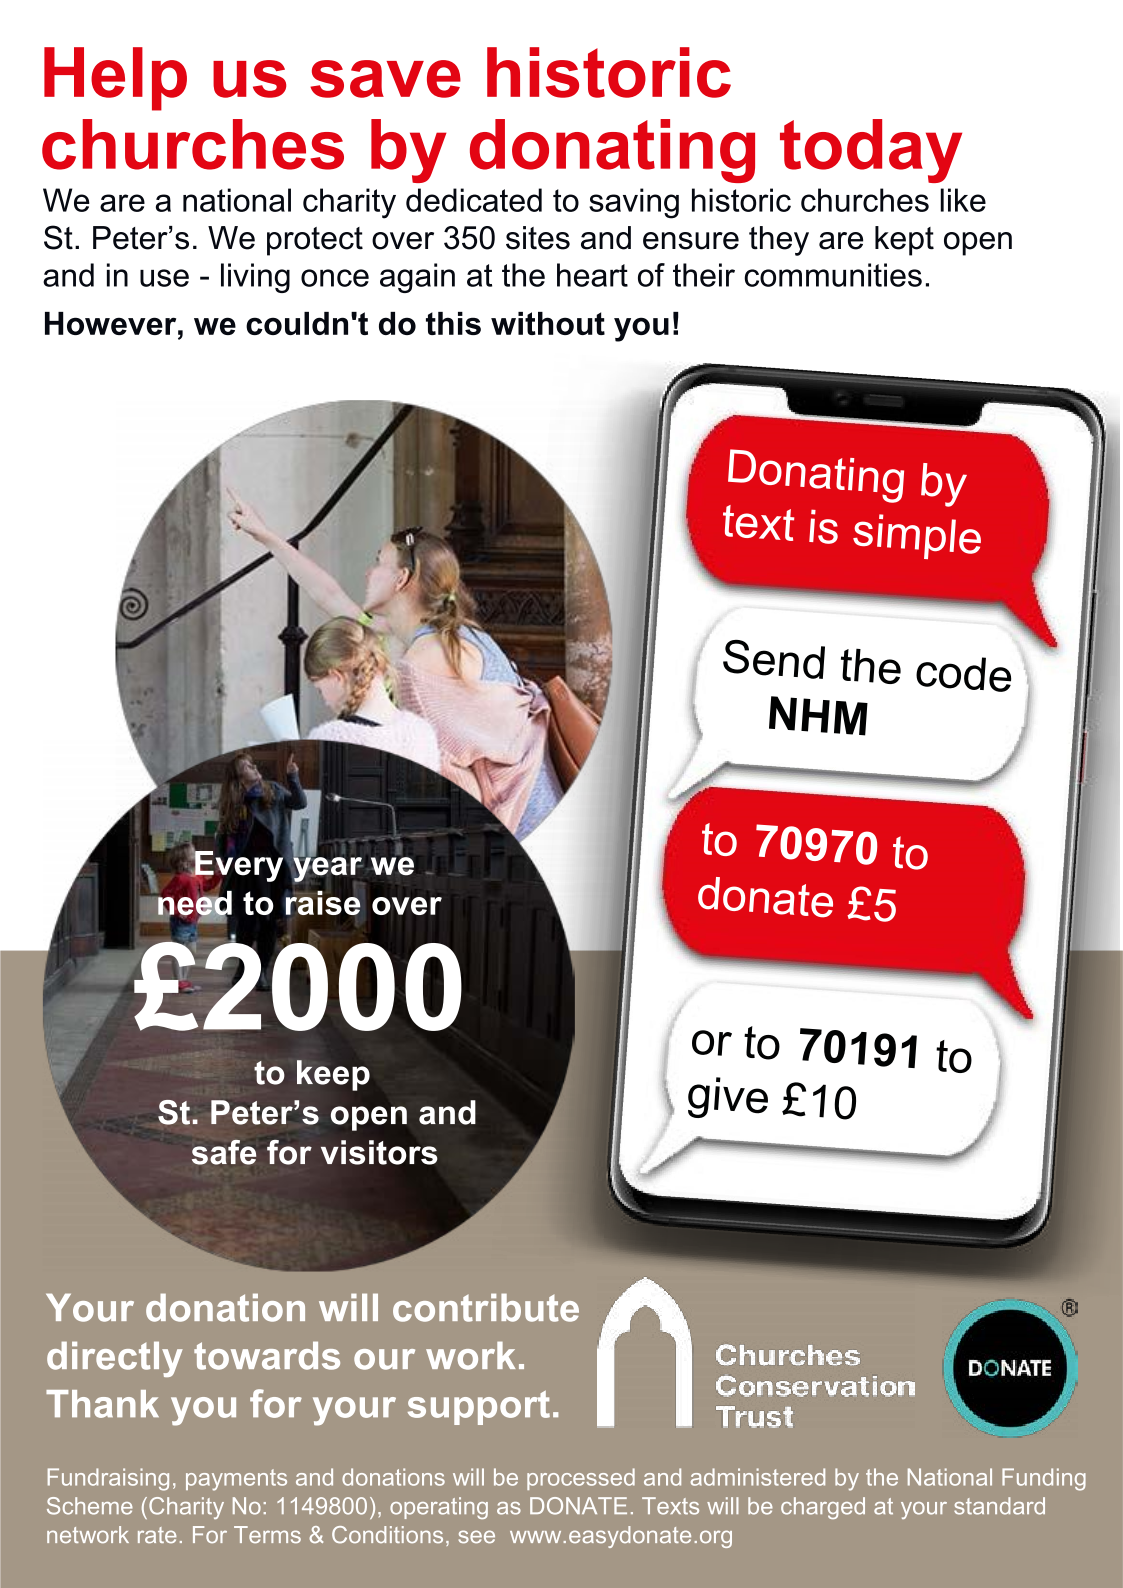 Please donate to the Churches Conservation Trust